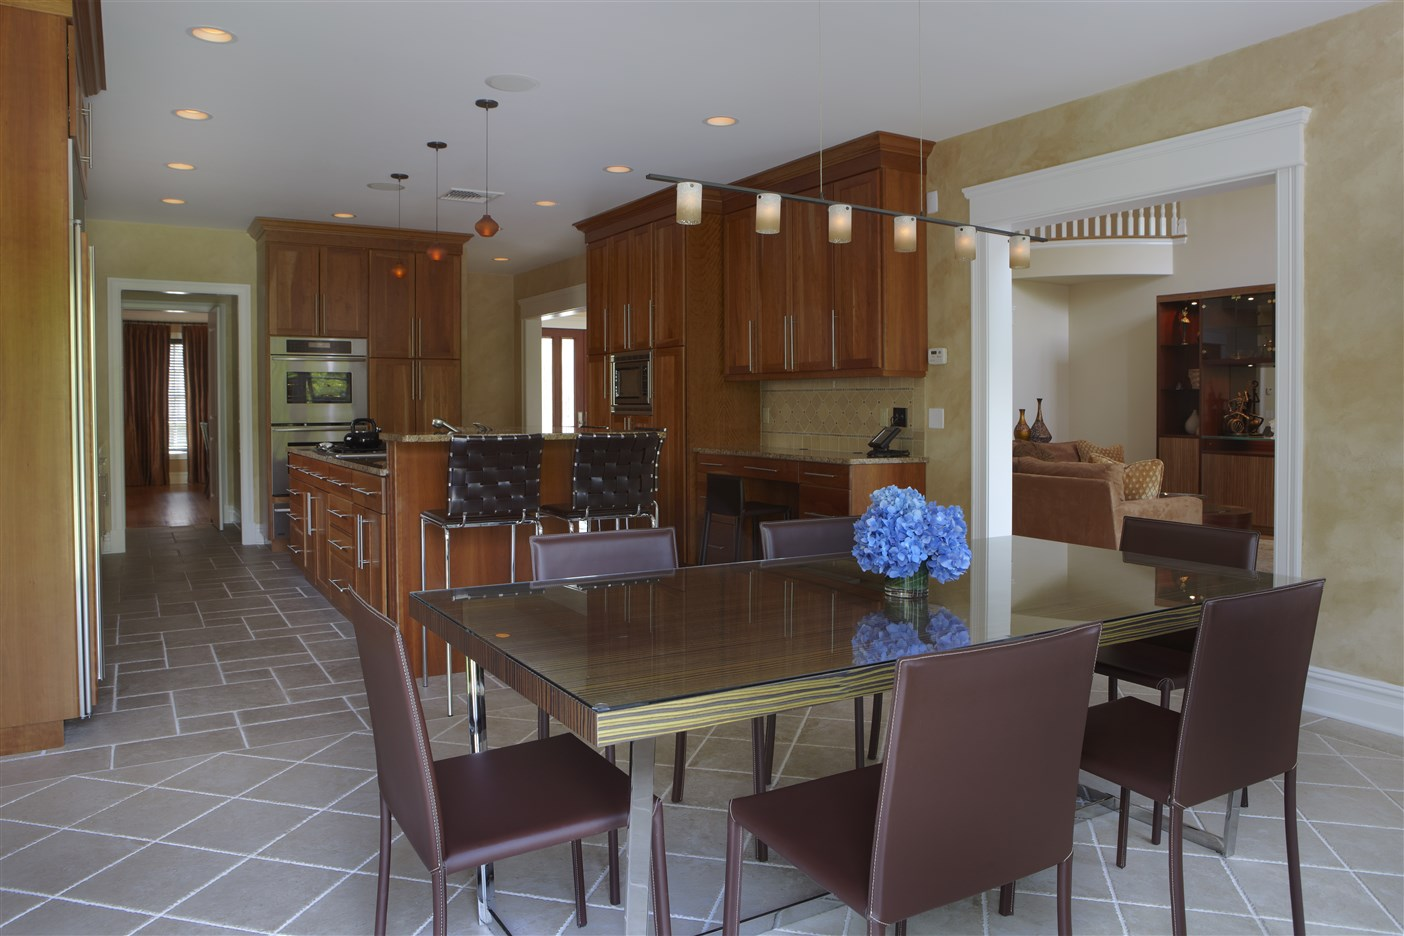 Dining table for six near the kitchen area